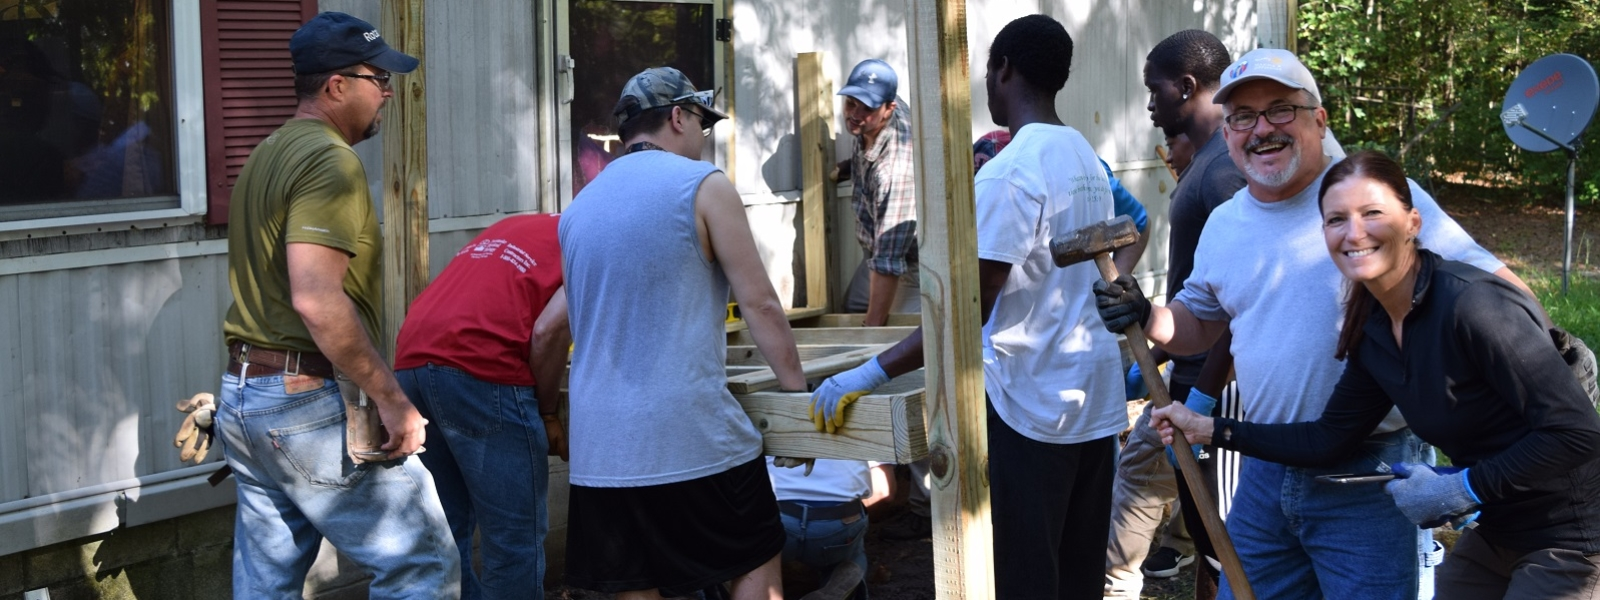 Volunteers work on a project for Chesapeake Housing Mission